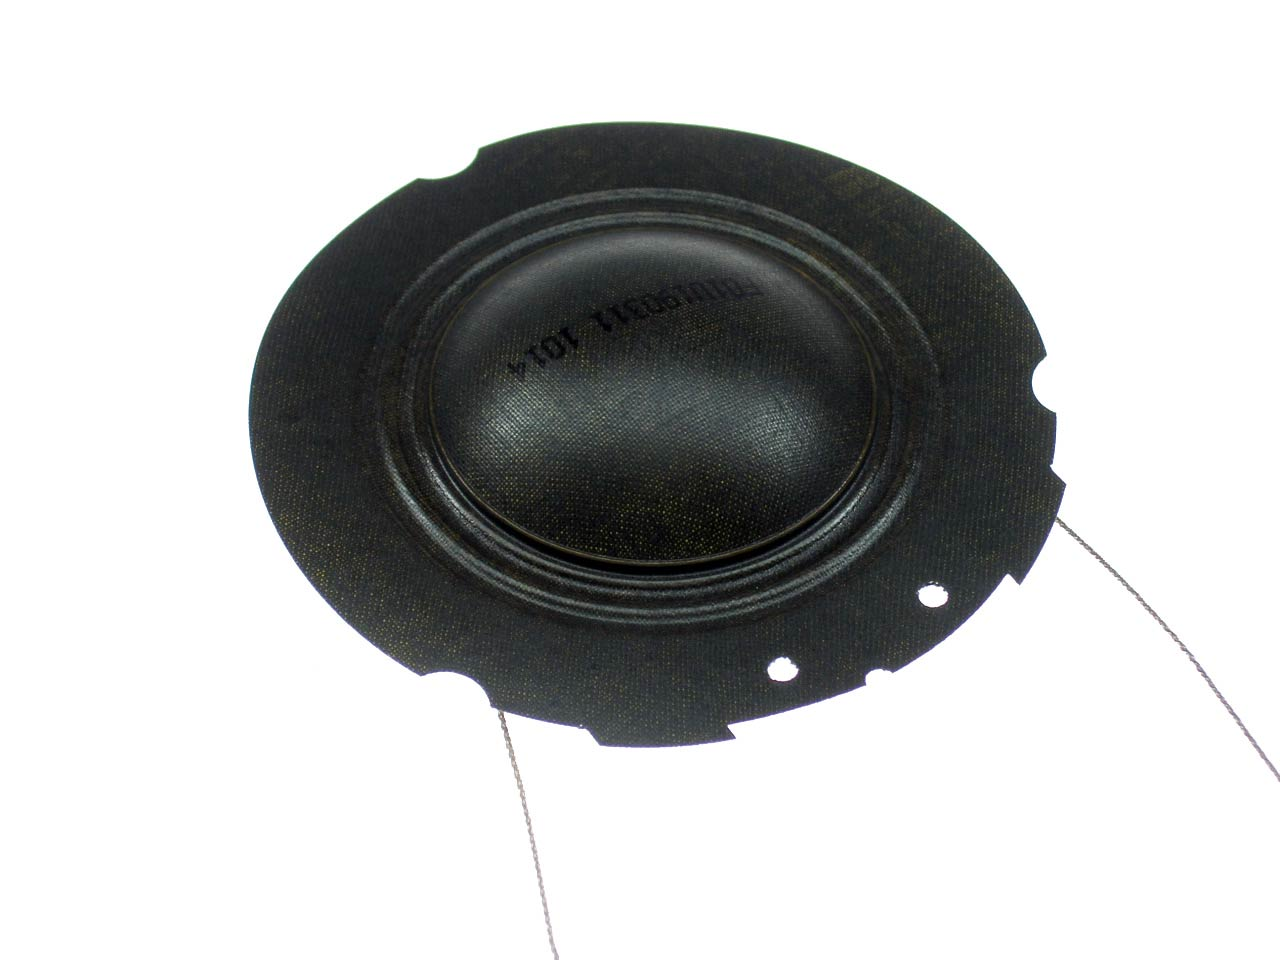 EV Factory Speaker Diaphragm, 100S, Sentry, Tapco, 8 Ohm, 89222A